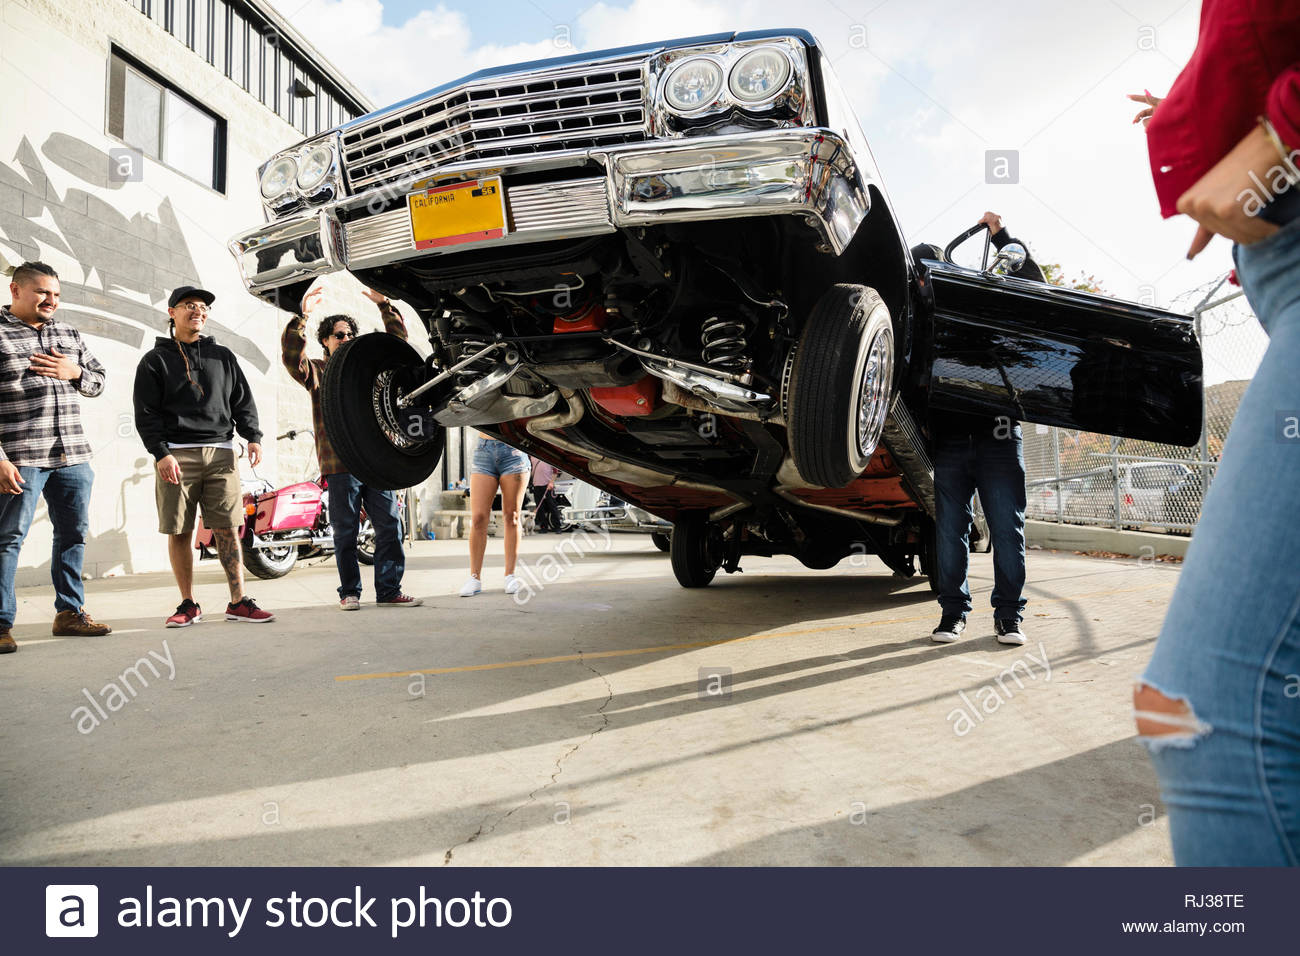 Latinx friends watching low rider car bouncing in sunny parking lot - Stock Image